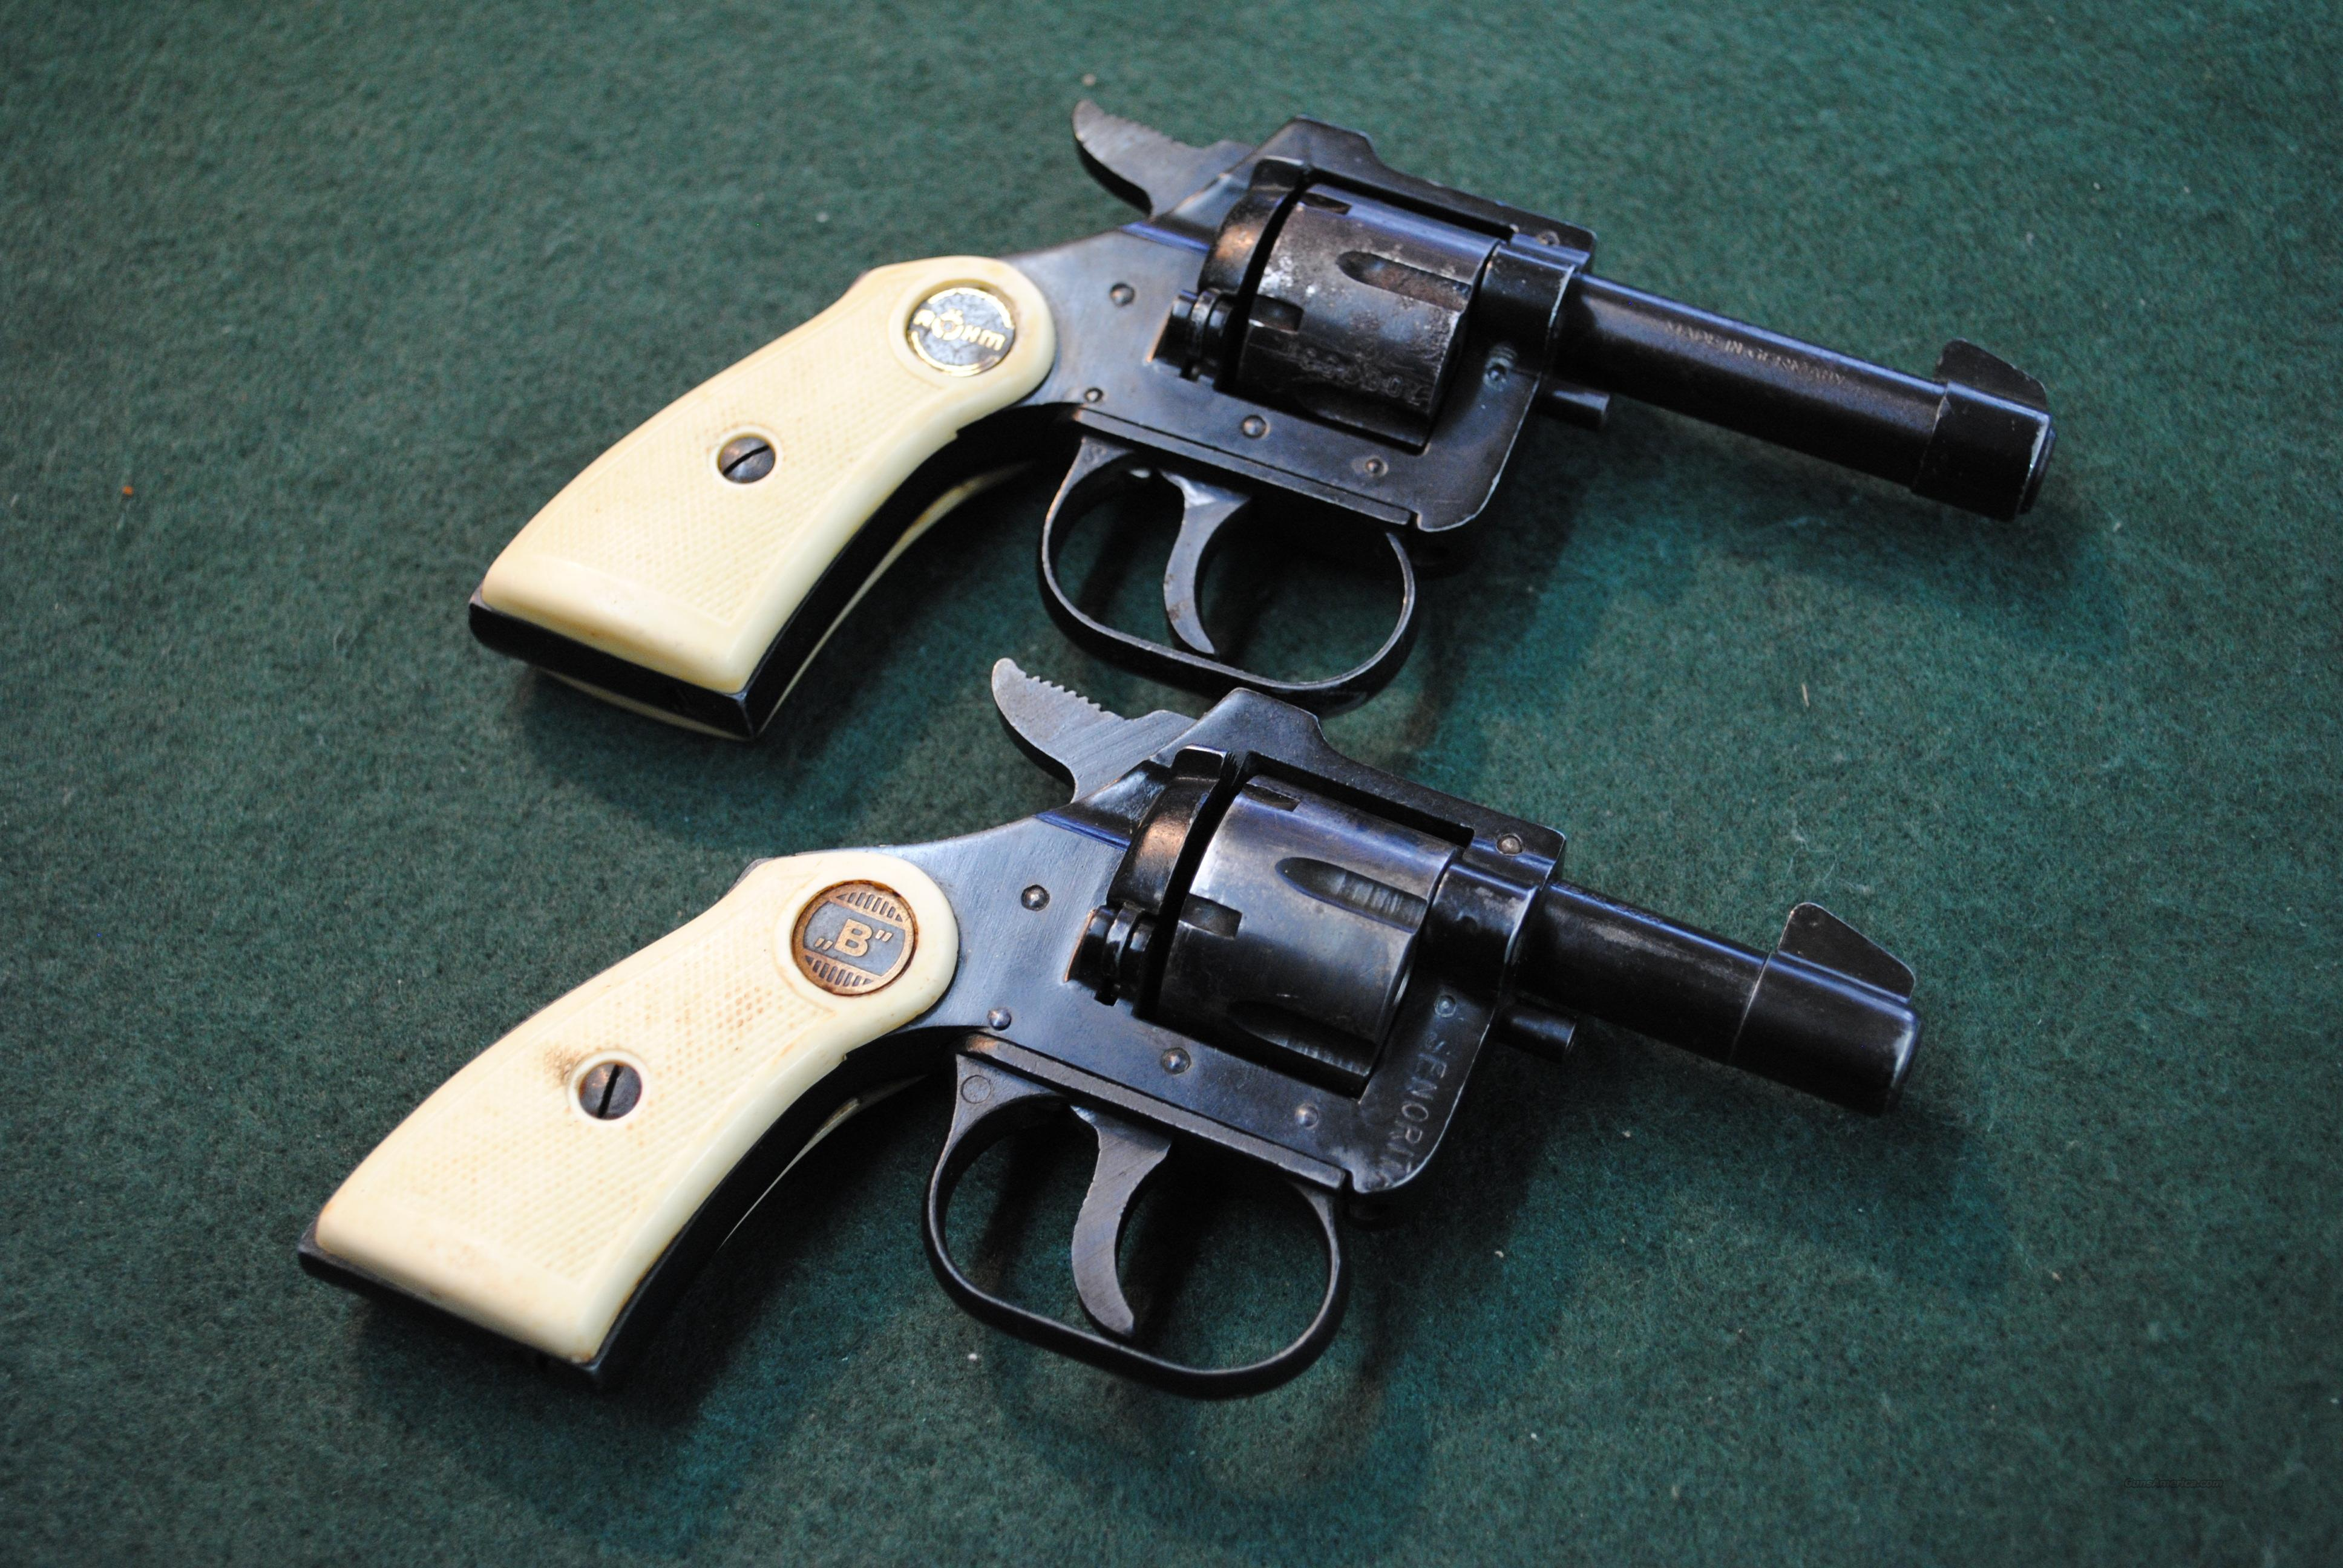 Pair of TWO Rohm 22 Short Revolvers GREAT PRICE   Guns > Pistols > Rossi Revolvers